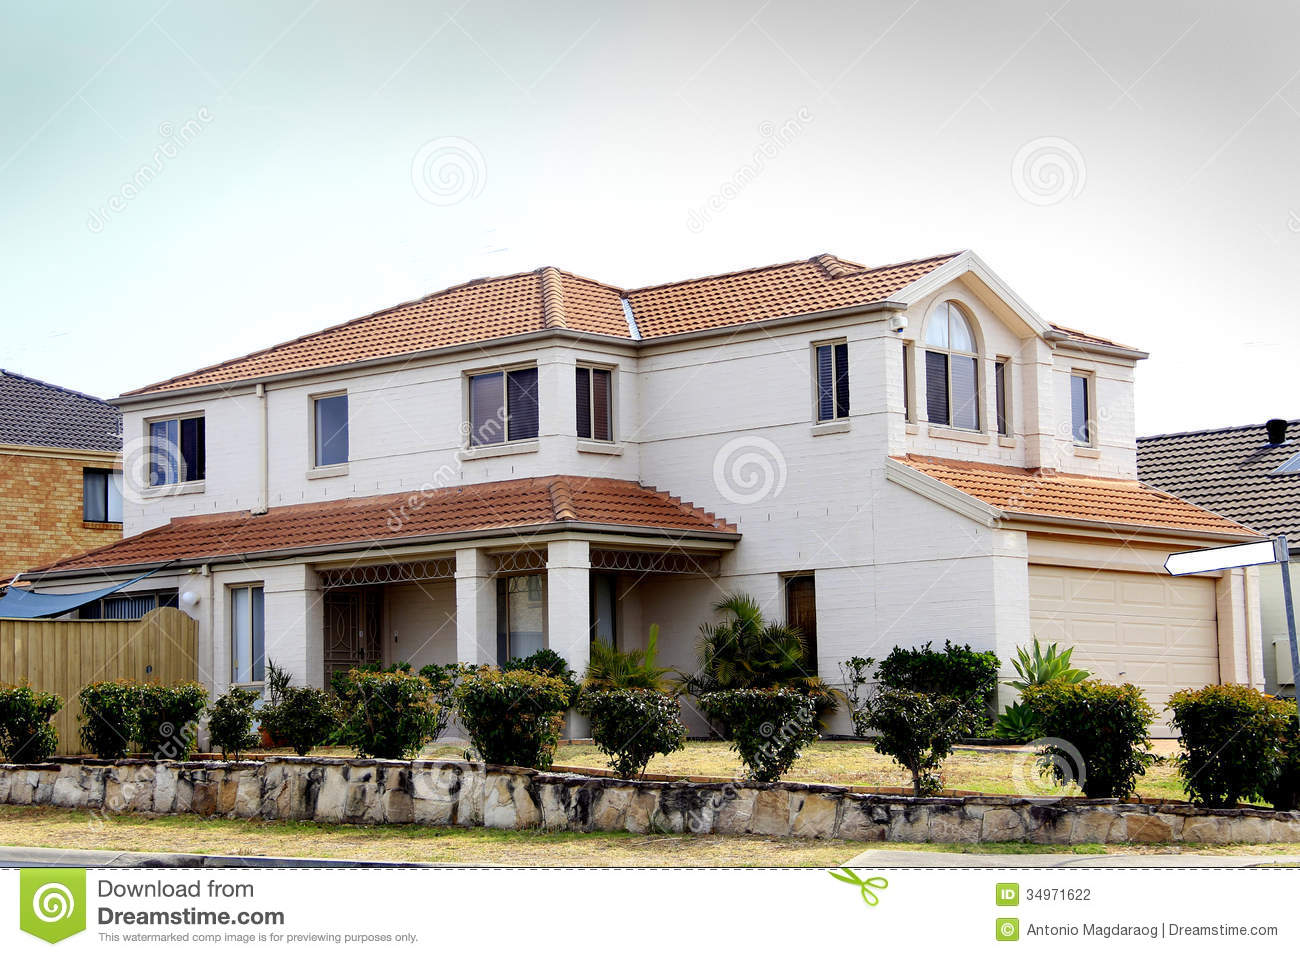 Residential house stock photography image 34971622 for Residential house pictures